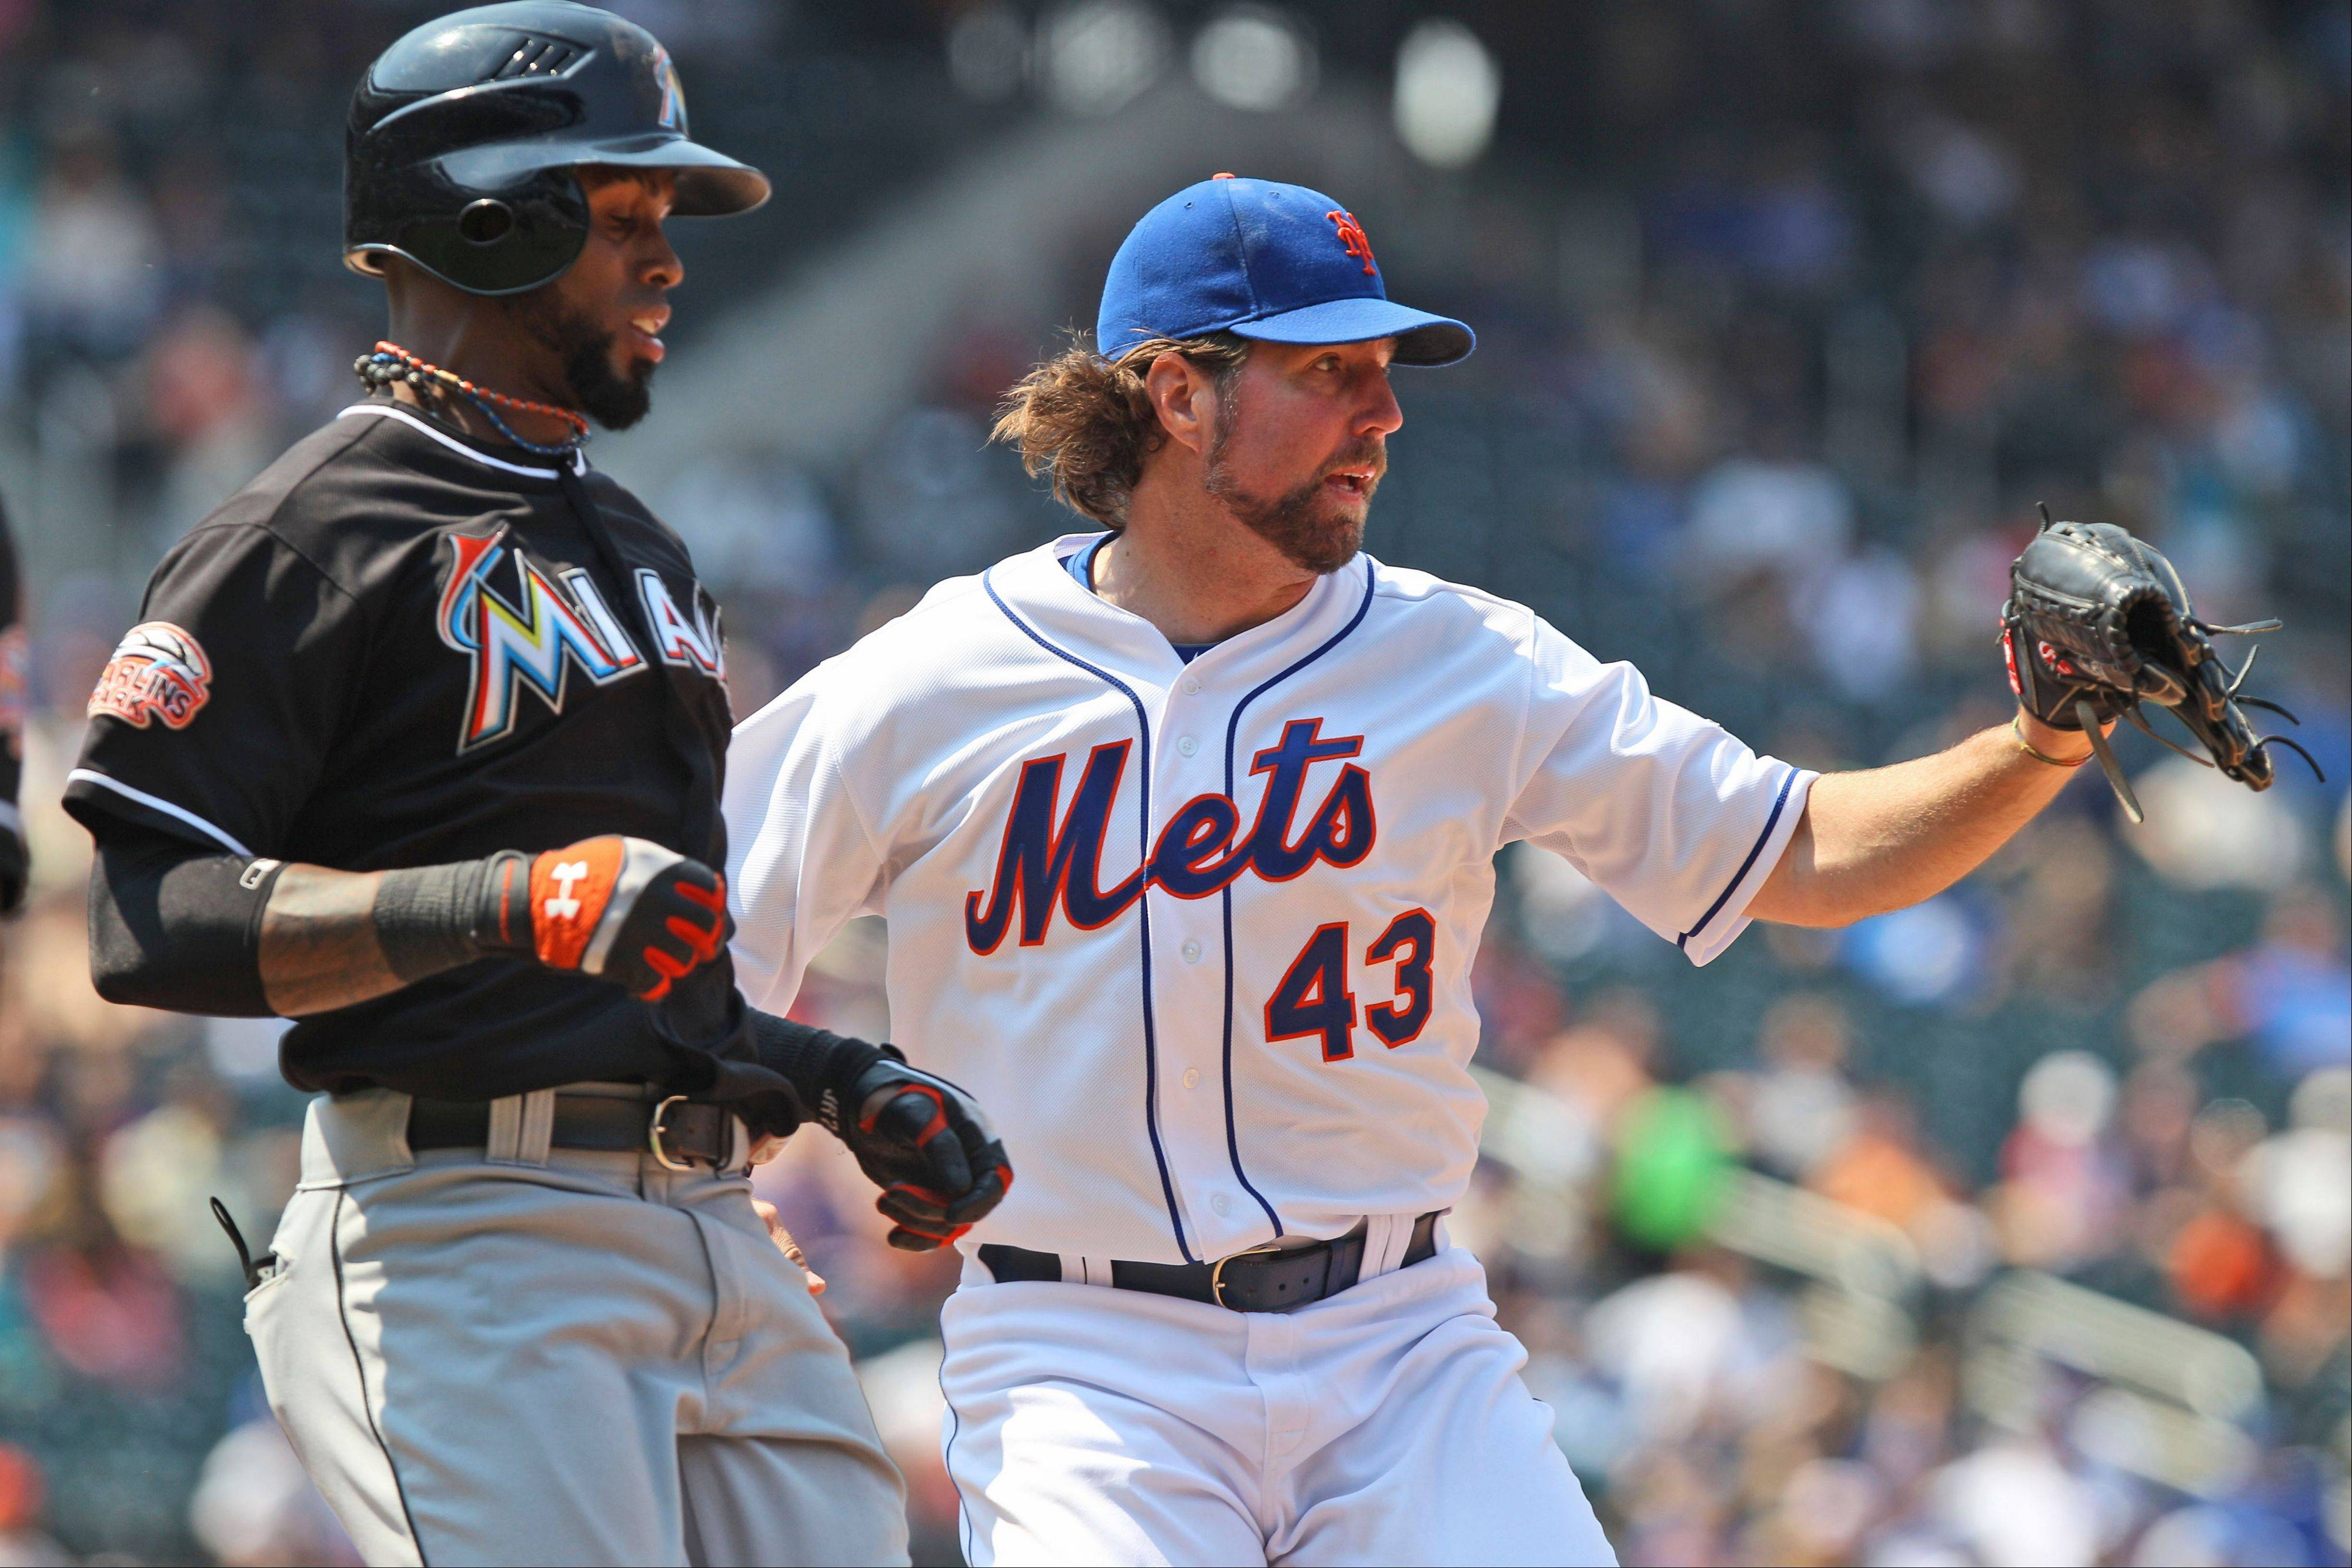 Mets starting pitcher R.A. Dickey, right, beats Miami�s Jose Reyes to first base for an out during the eighth inning Thursday in New York.